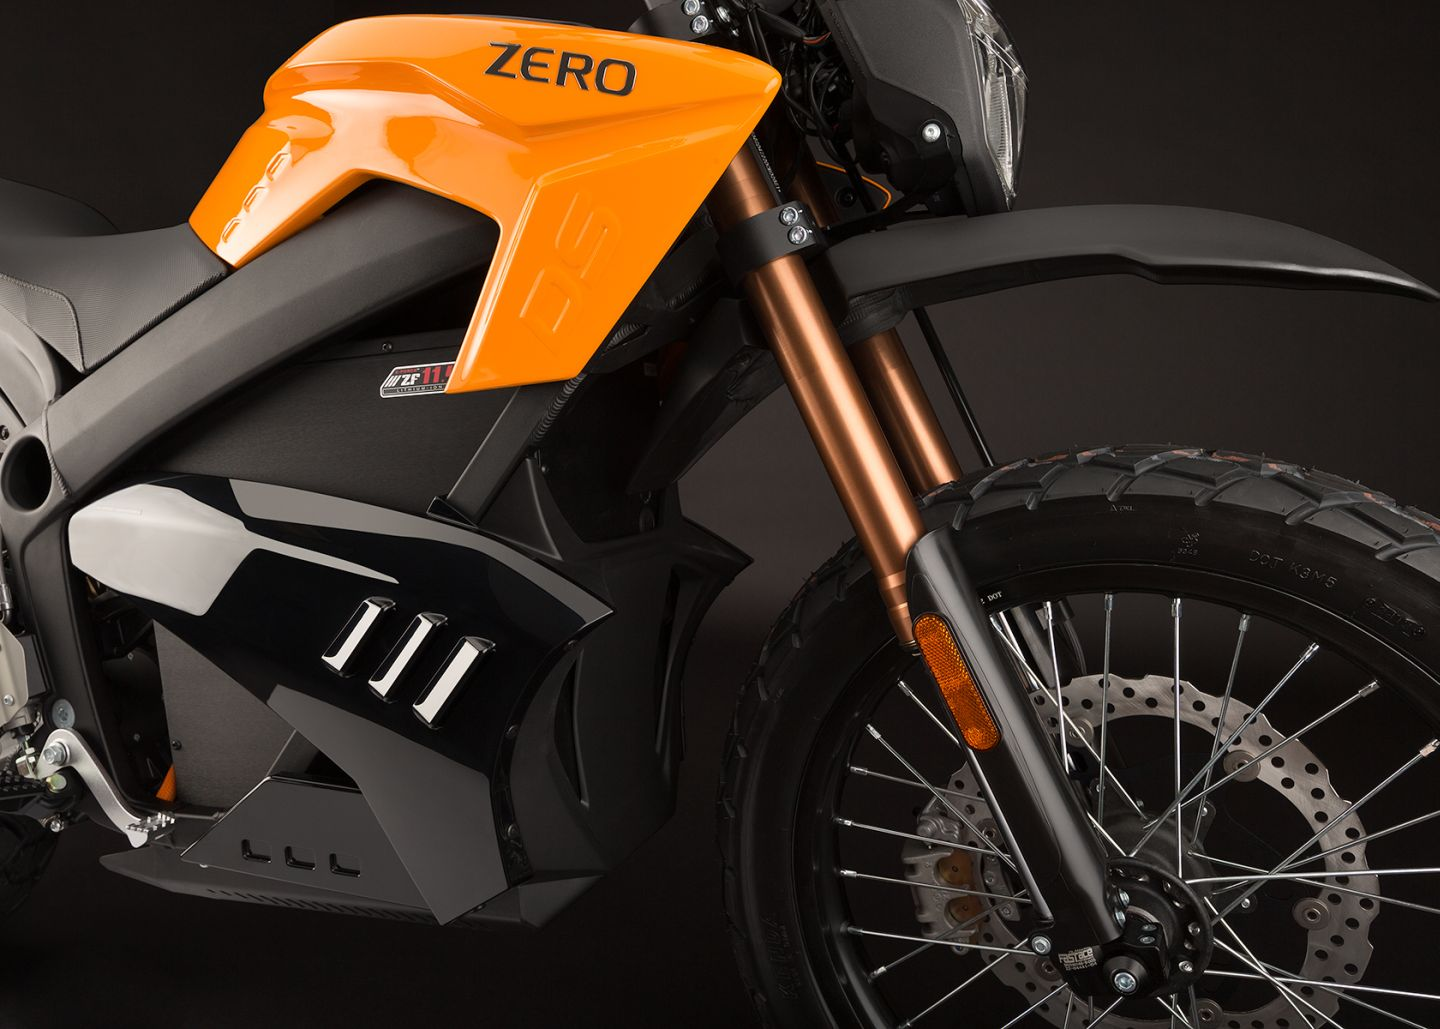 2013-zero-ds-dual-sport-electric-bike-pricing-photo-gallery_10.jpg